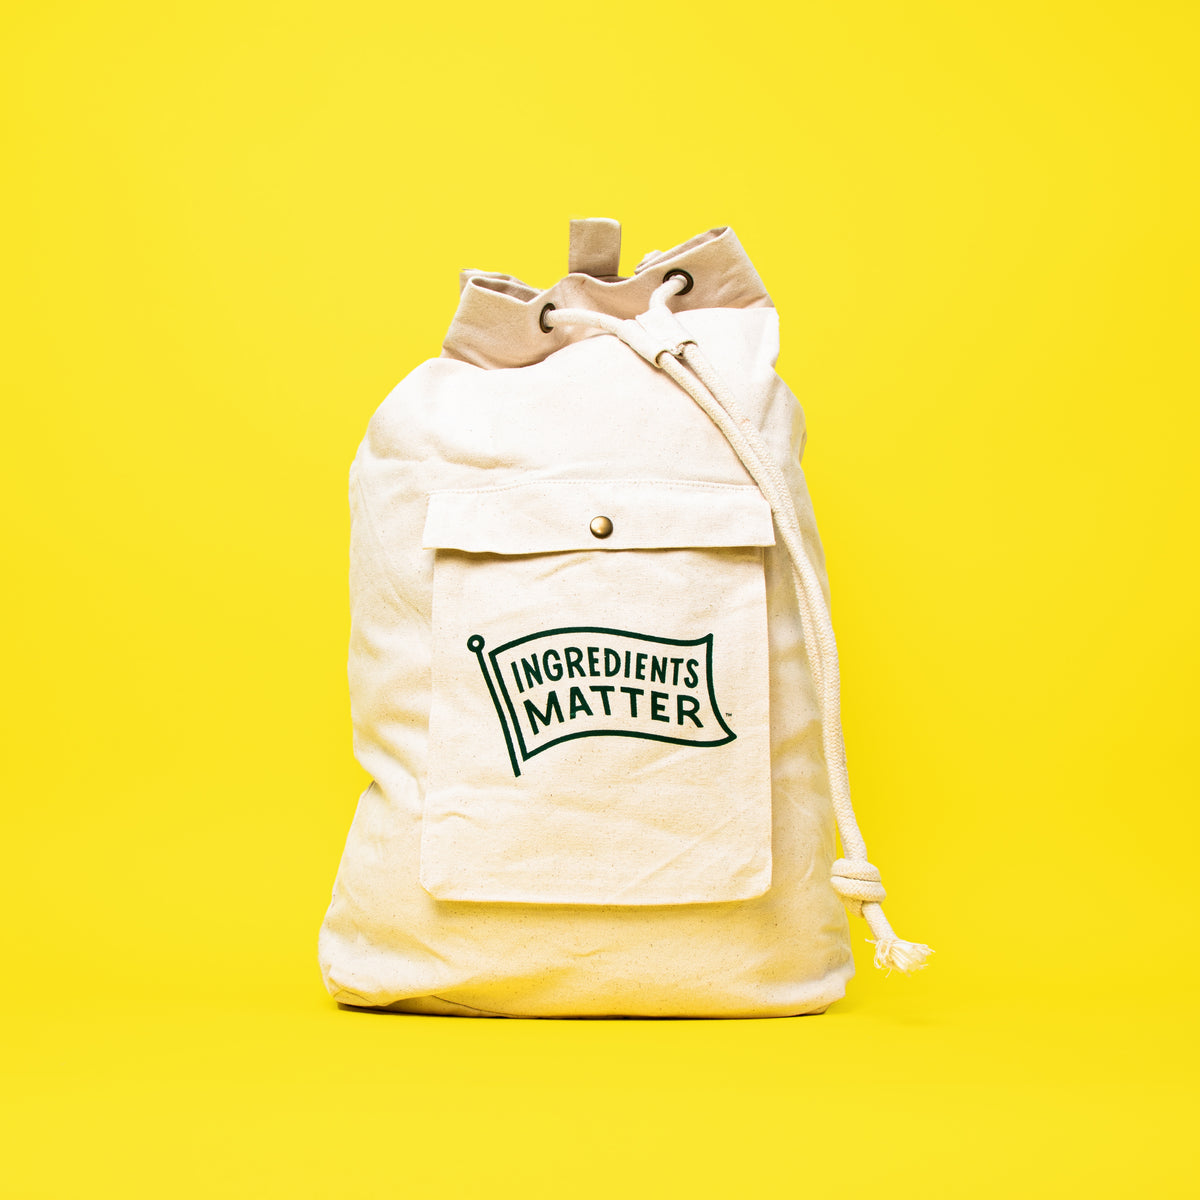 canvas laundry bag with Ingredients Matter logo